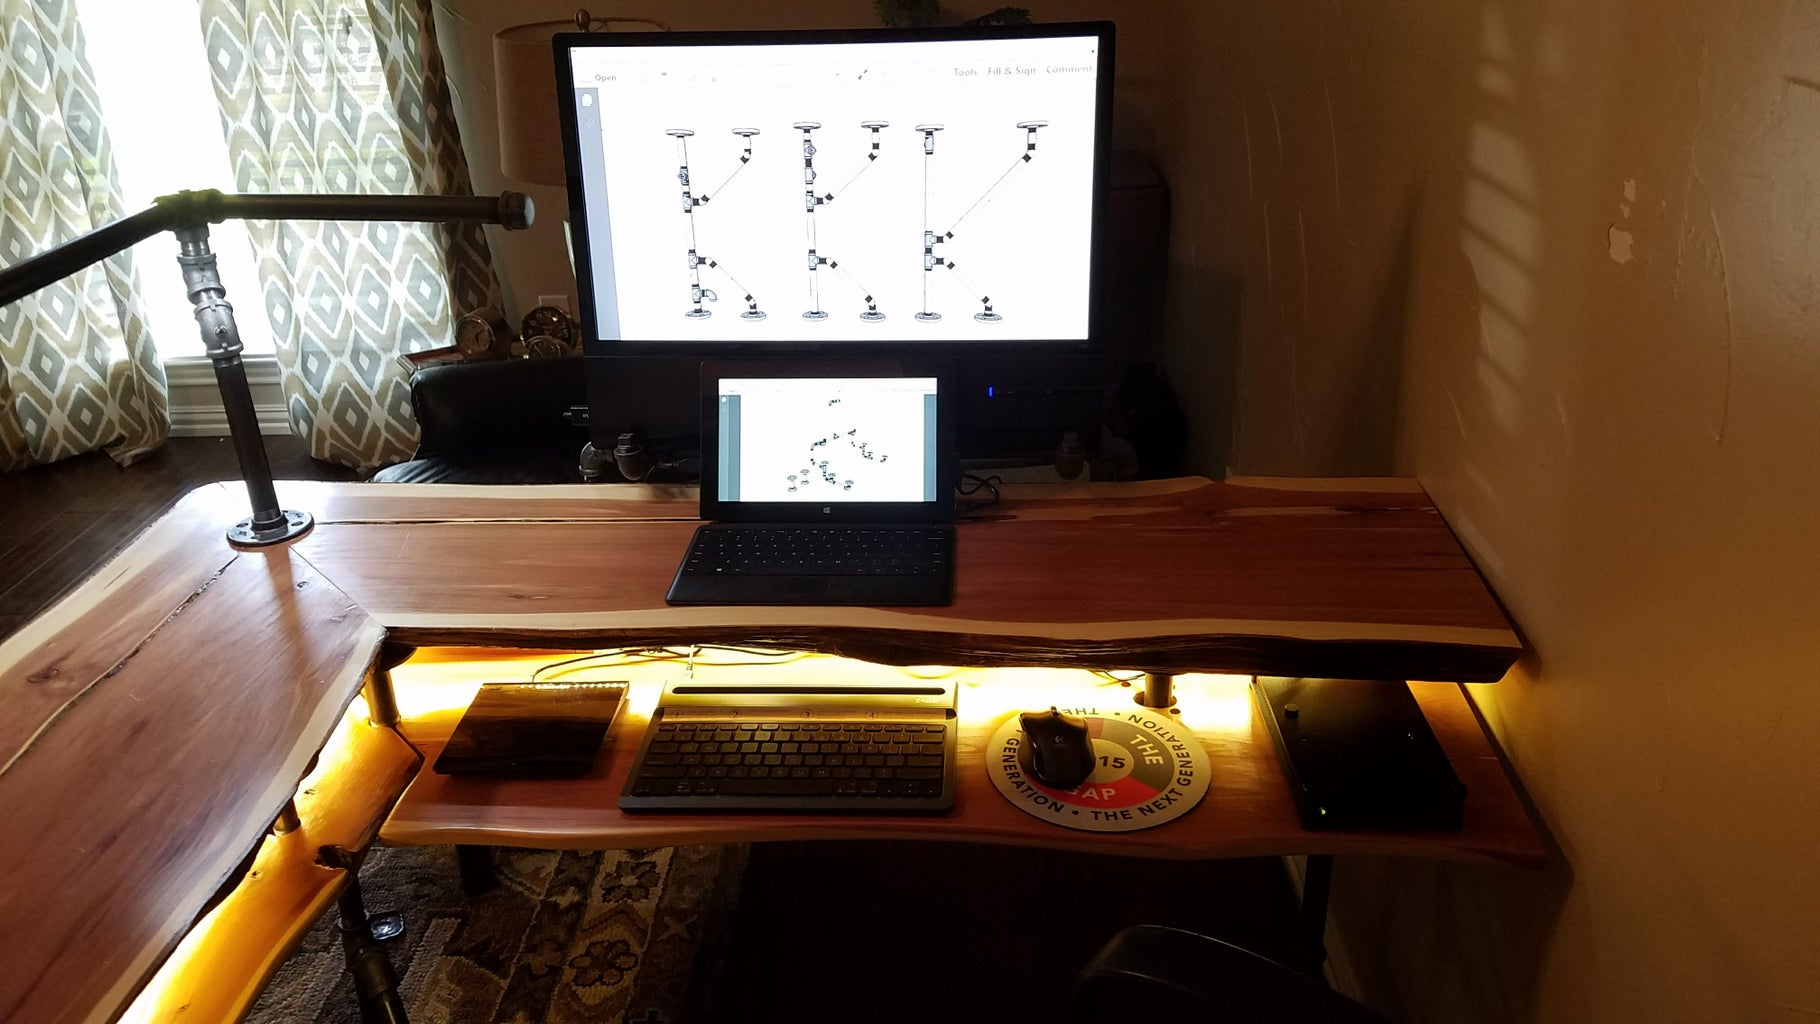 Adding the Keyboard and Storage Shelves